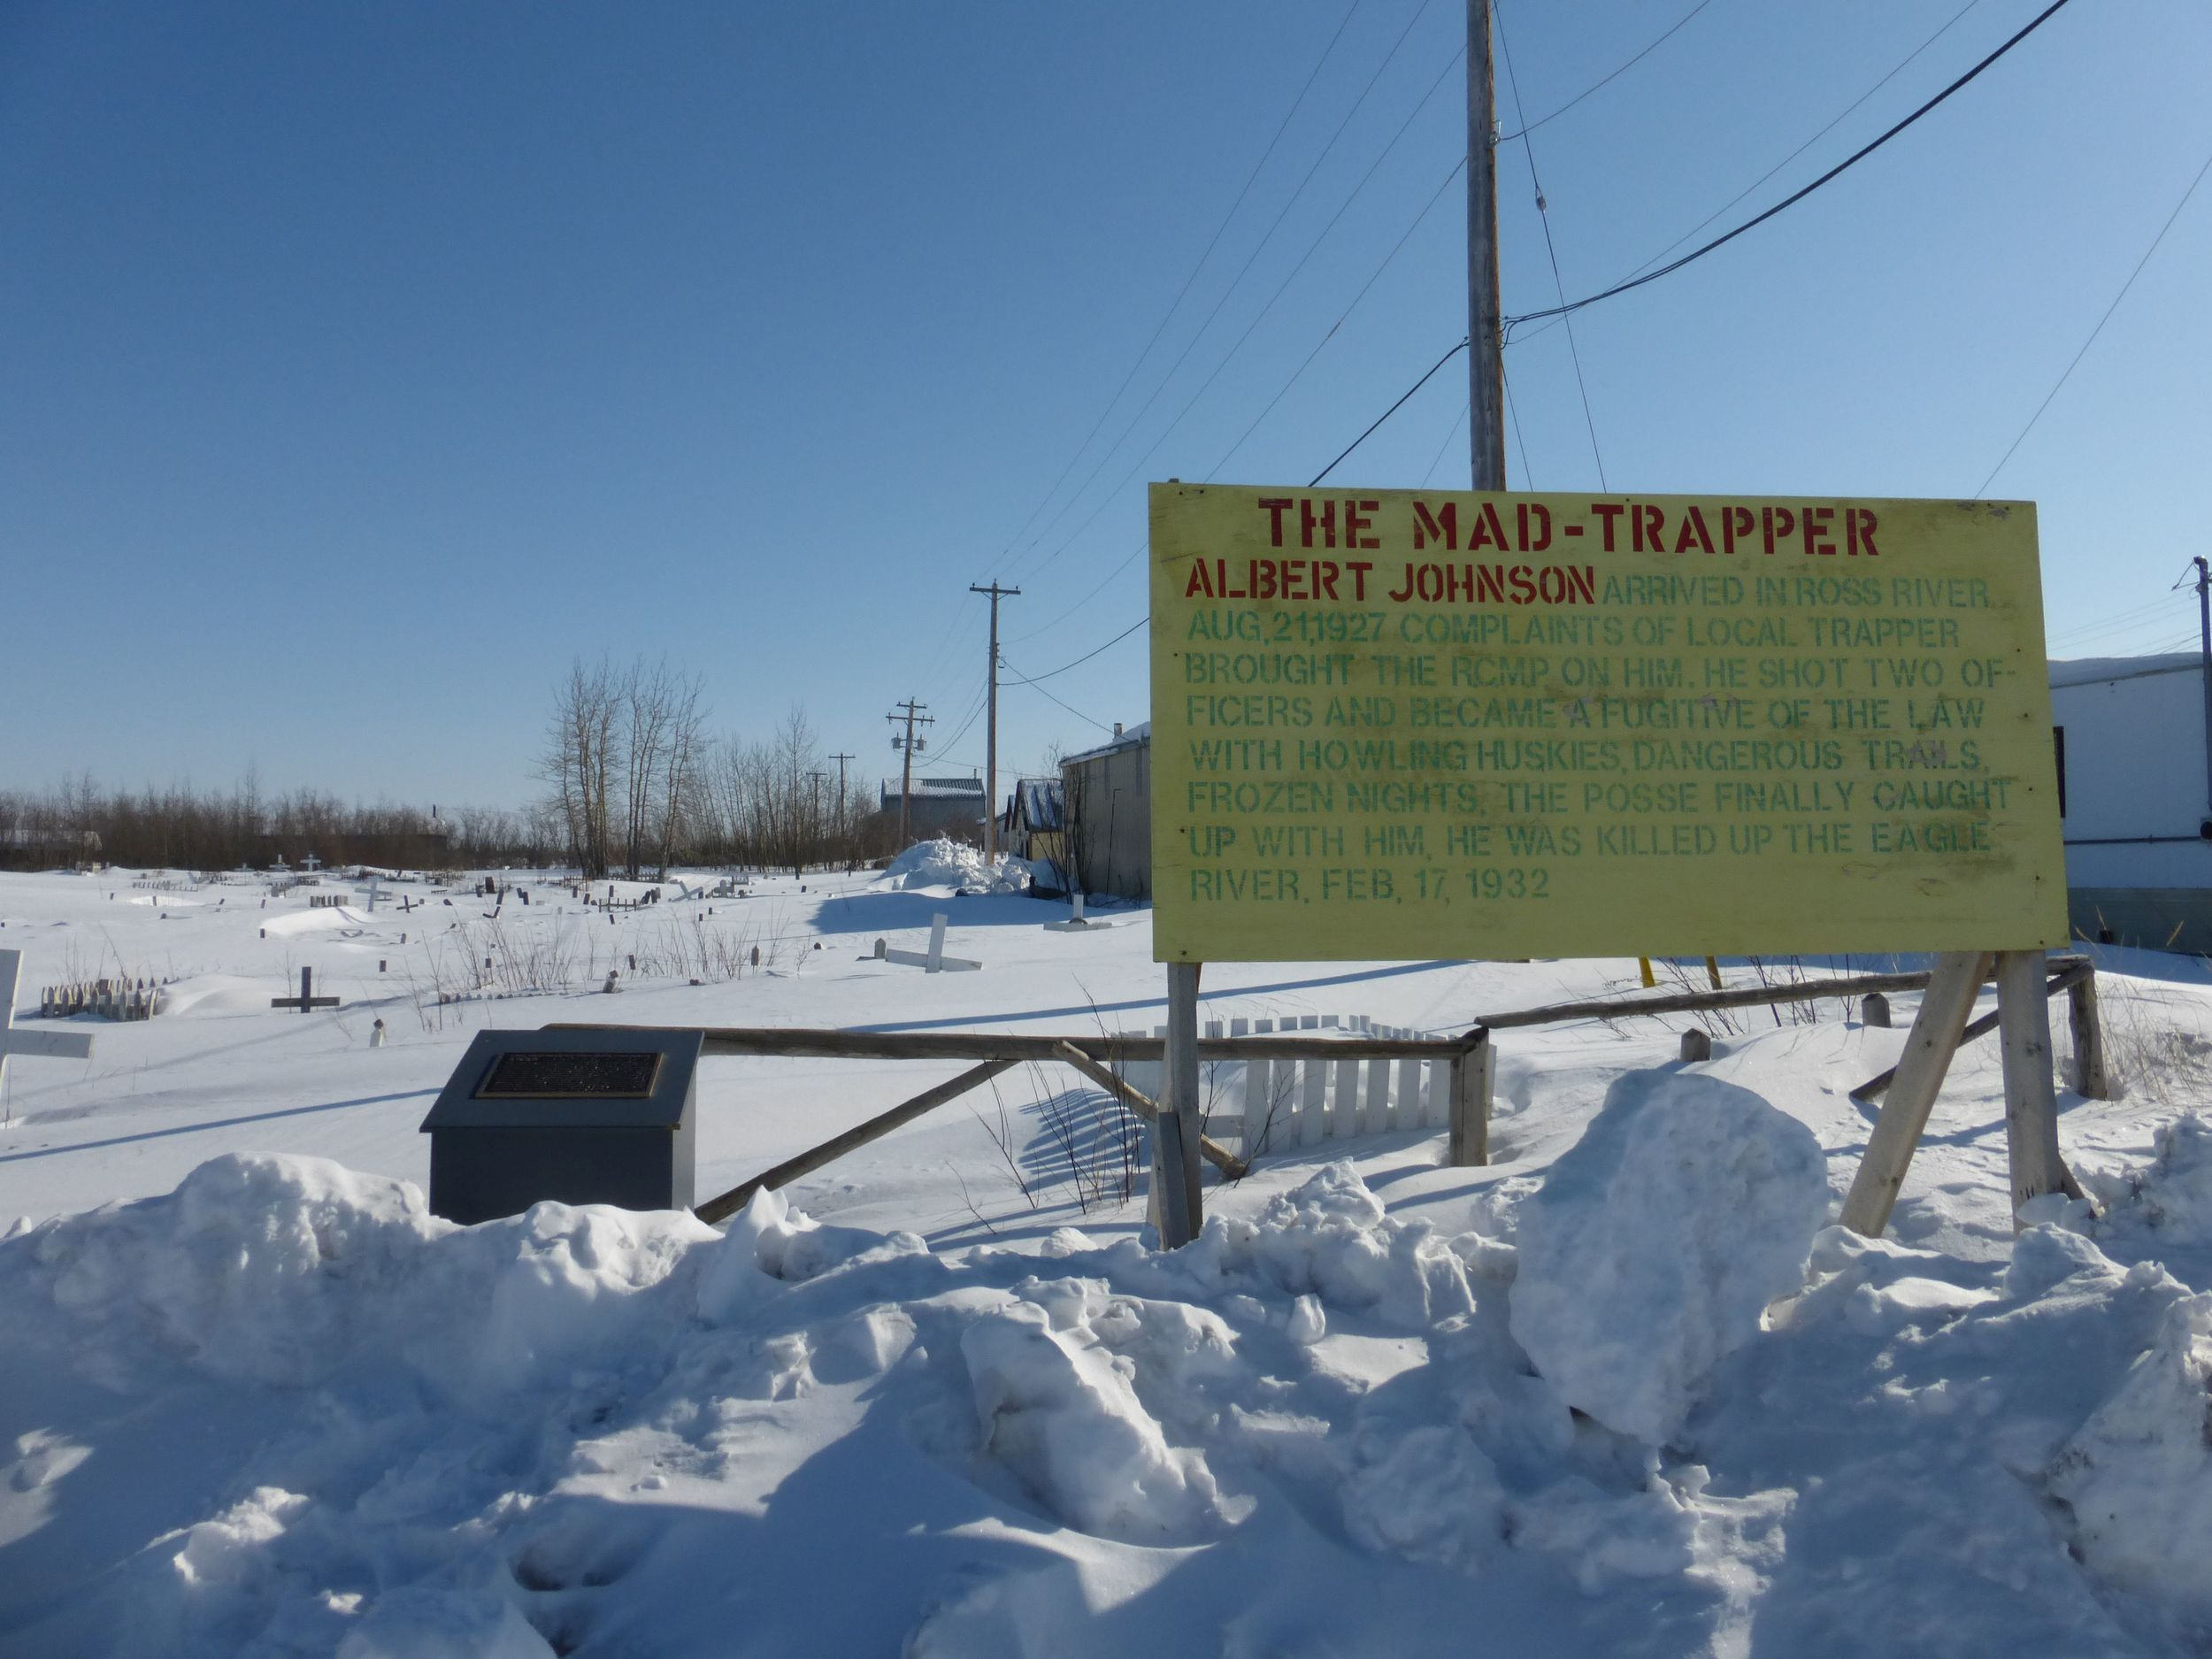 The story of the mad trapper: Albert Johnson shot an RCMP officer at his cabin and then went on a run. There was an epic 3 week chase down the mountains and he was shot at Eagle River some three weeks later.